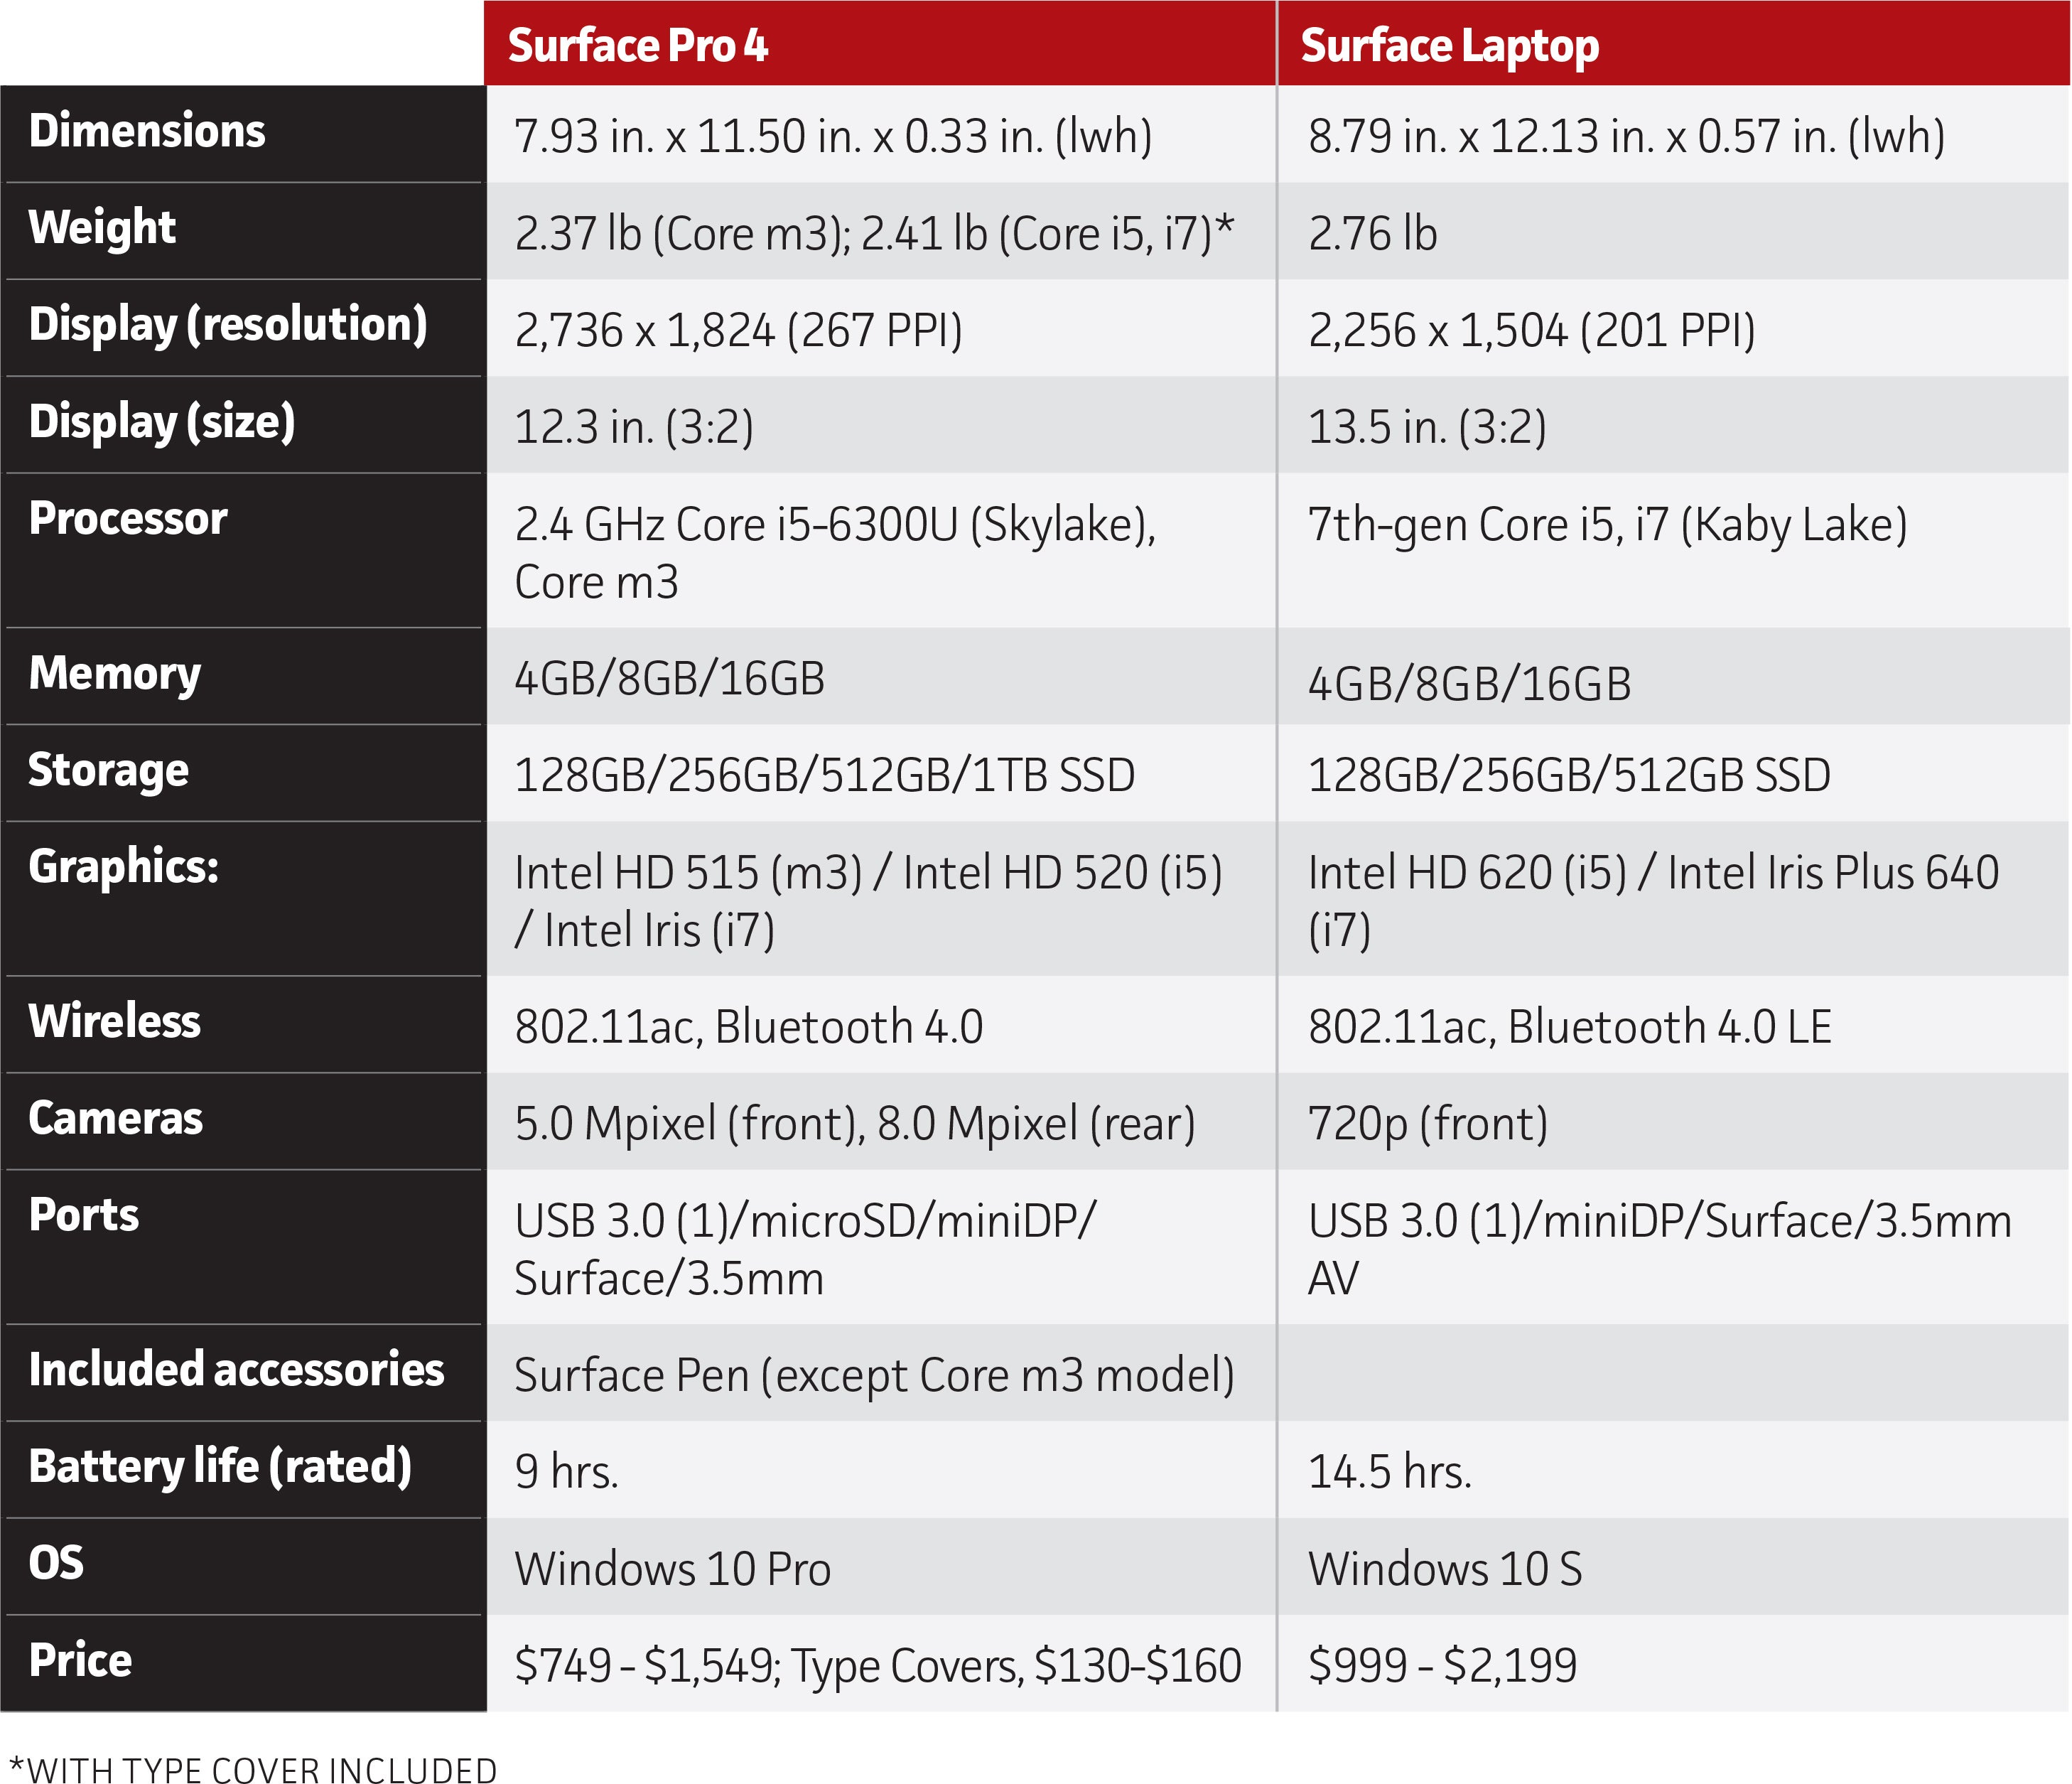 Surface Laptop Vs Surface Pro 4 Prices Features And